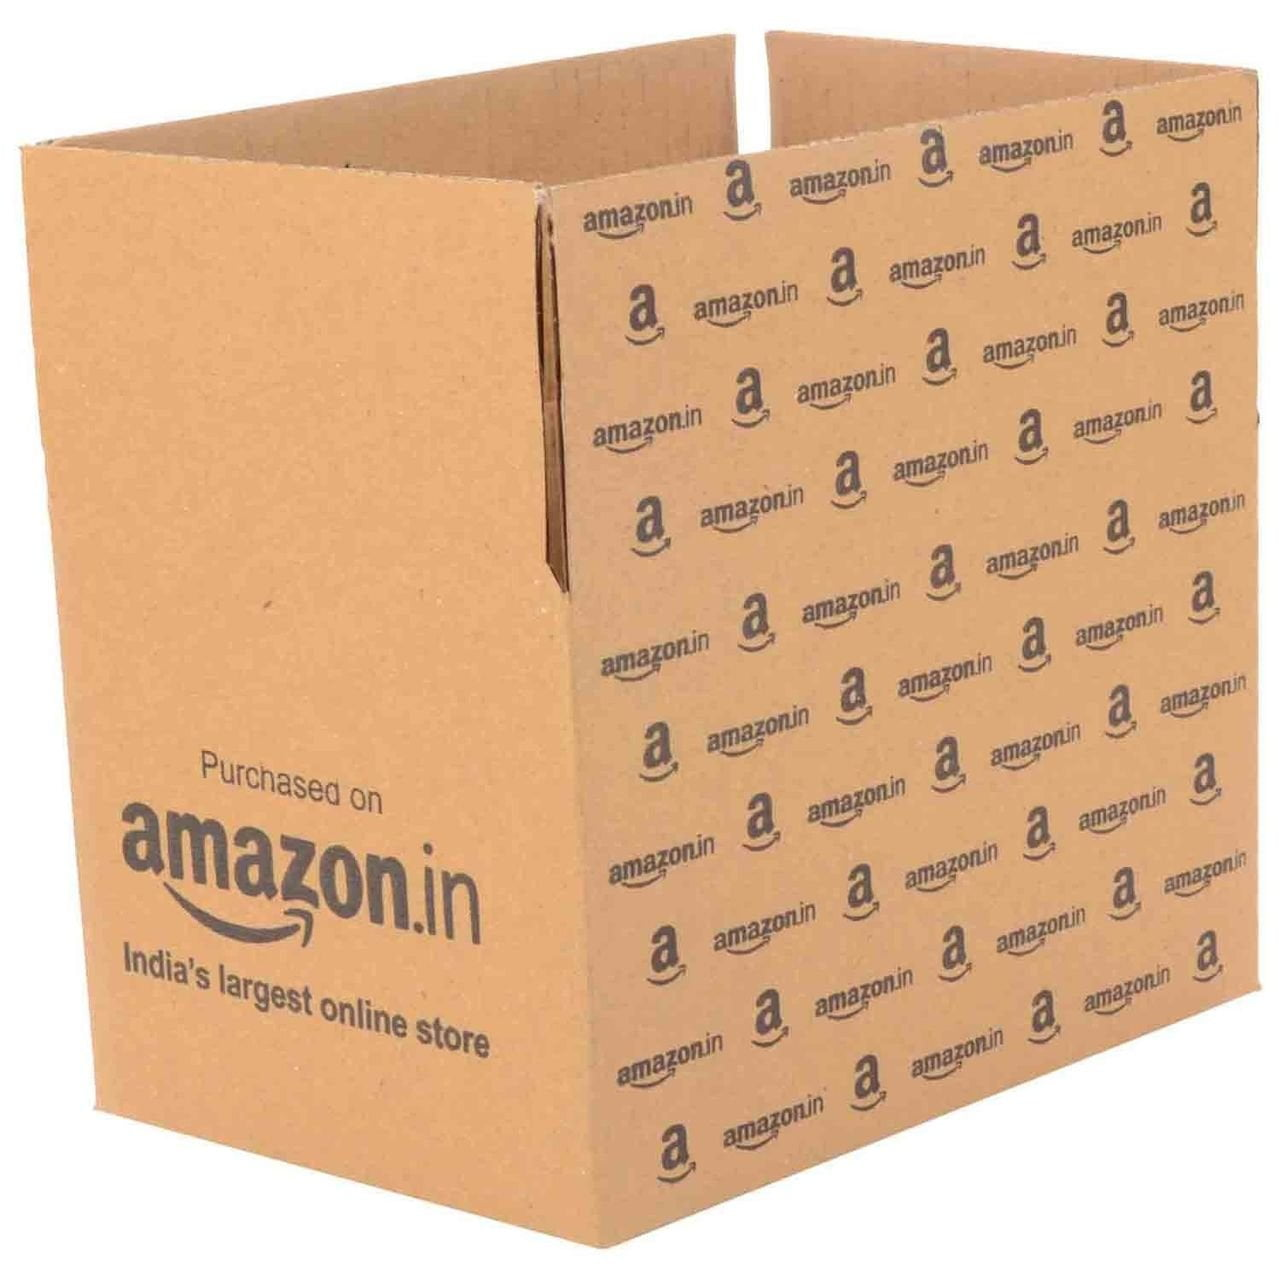 Amazon Corrugated Boxes (5x4.5x3.5-inch)